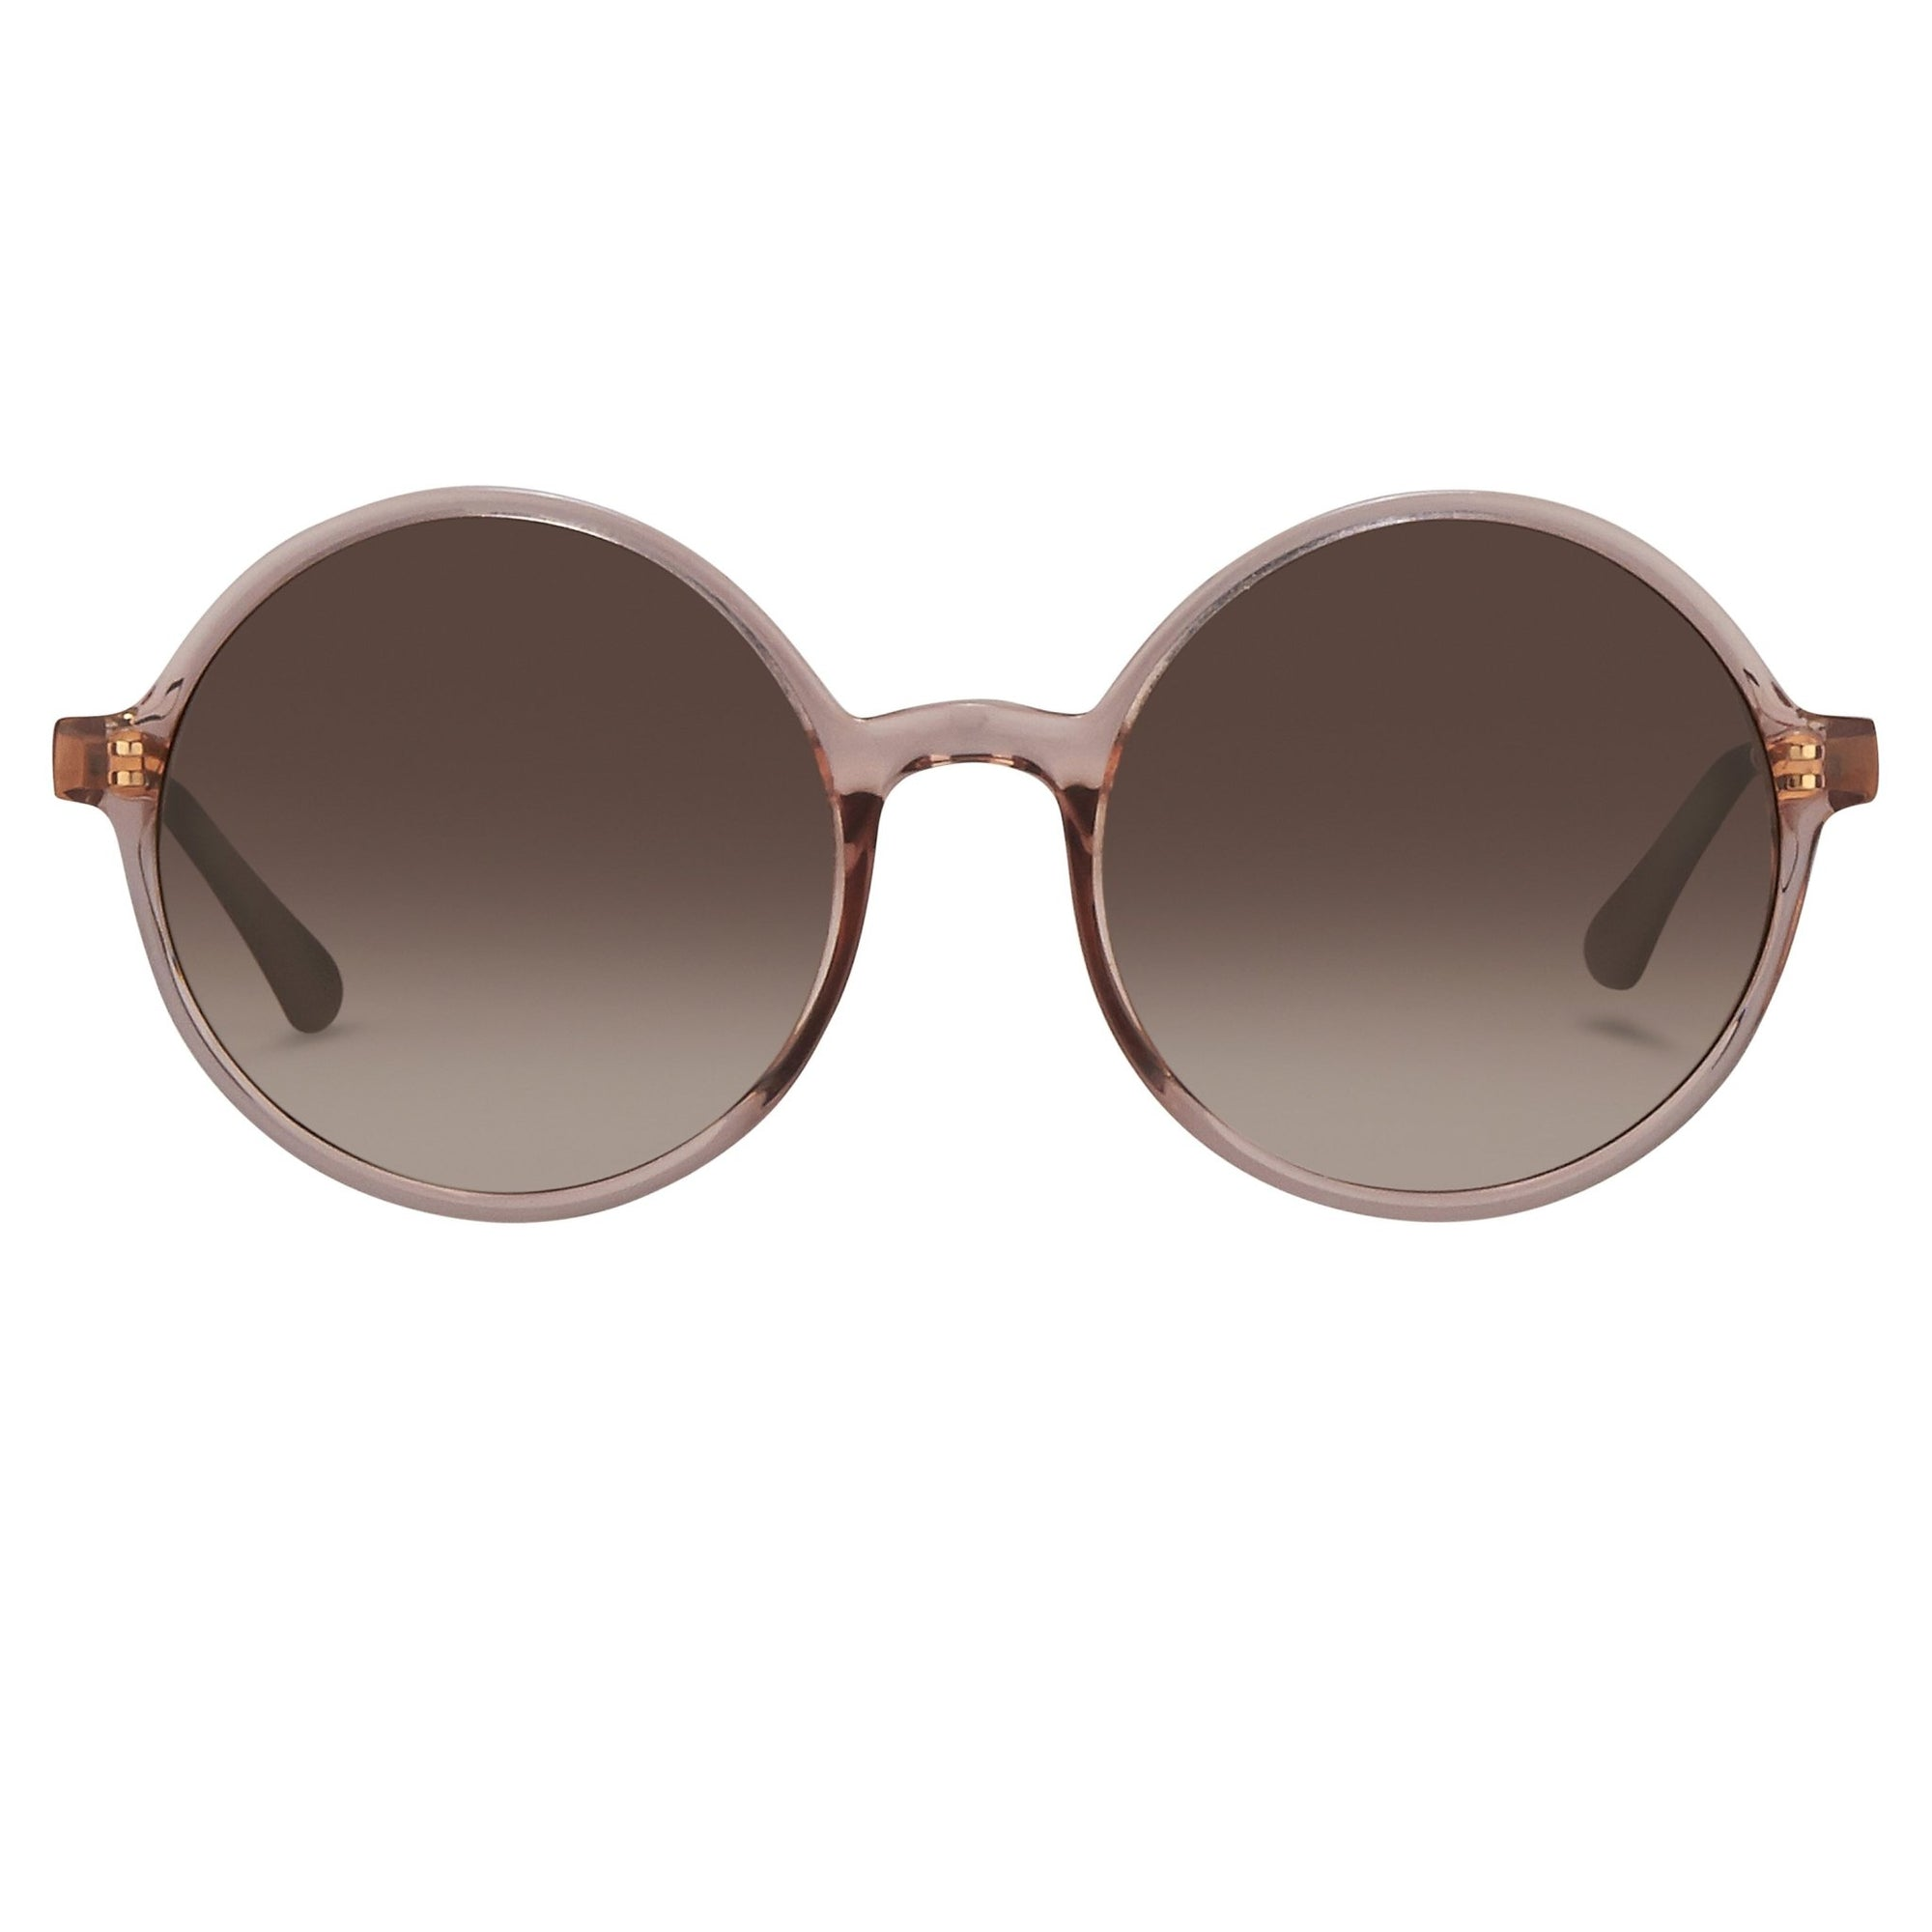 Orlebar Brown Sunglasses Round Fig with Brown Graduated Lenses OB27C5SUN - Watches & Crystals